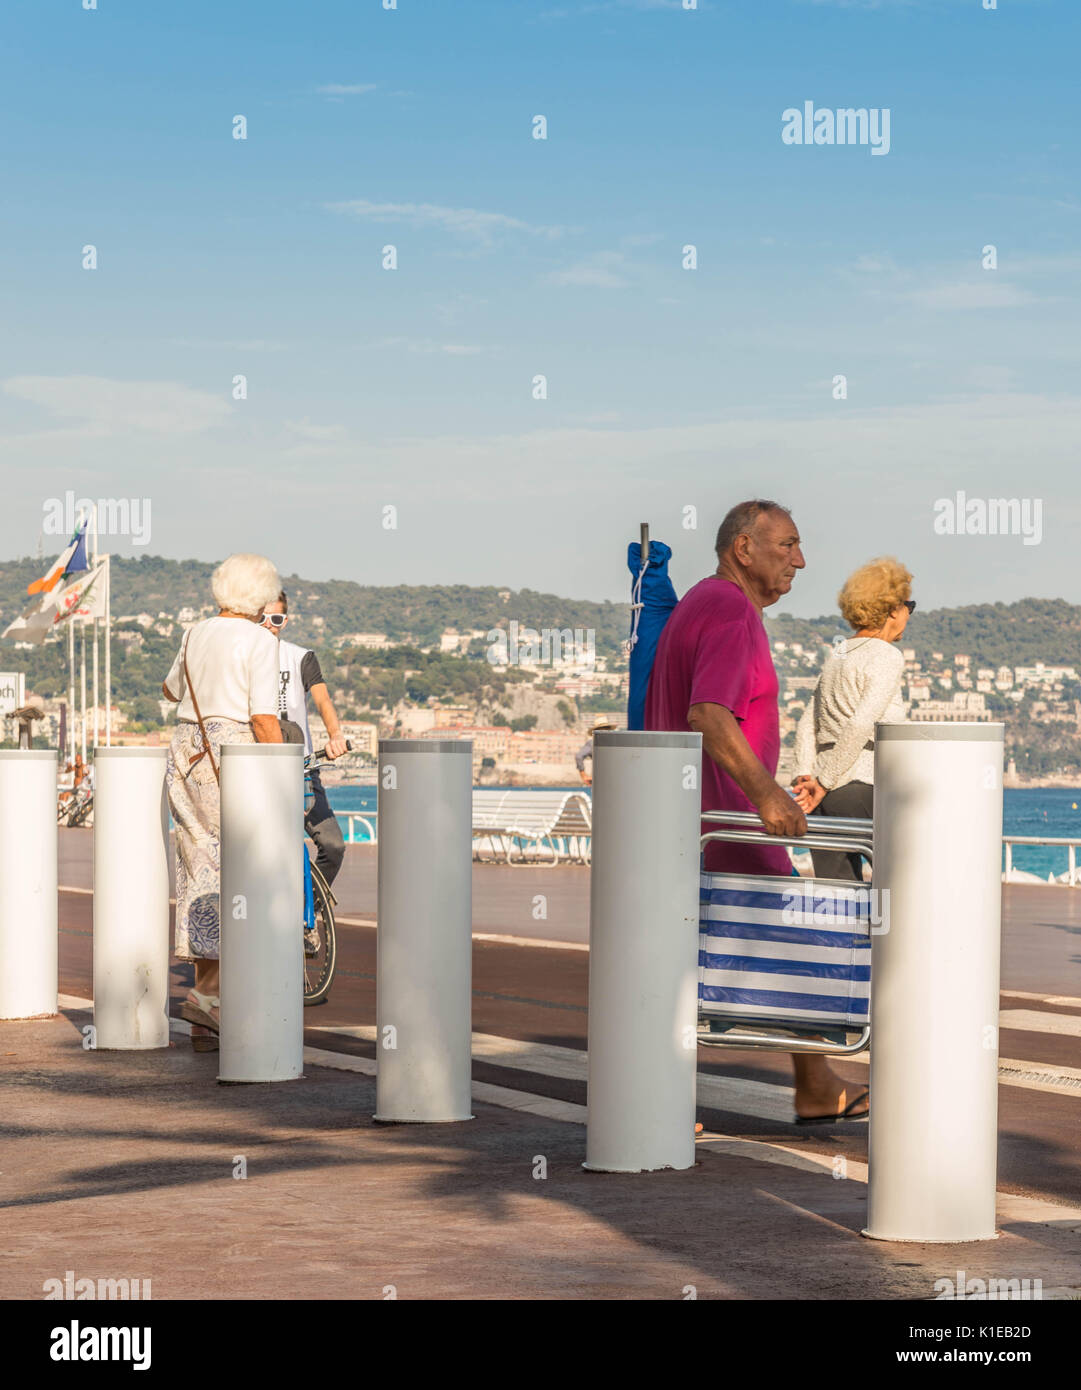 Nice, France. 26th August, 2017. Following the devastating terrorist attack in Nice on July 14, 2016, security forces have set up security barriers along the Promenade des Anglais Credit: Alexandre Rotenberg/Alamy Live News - Stock Image